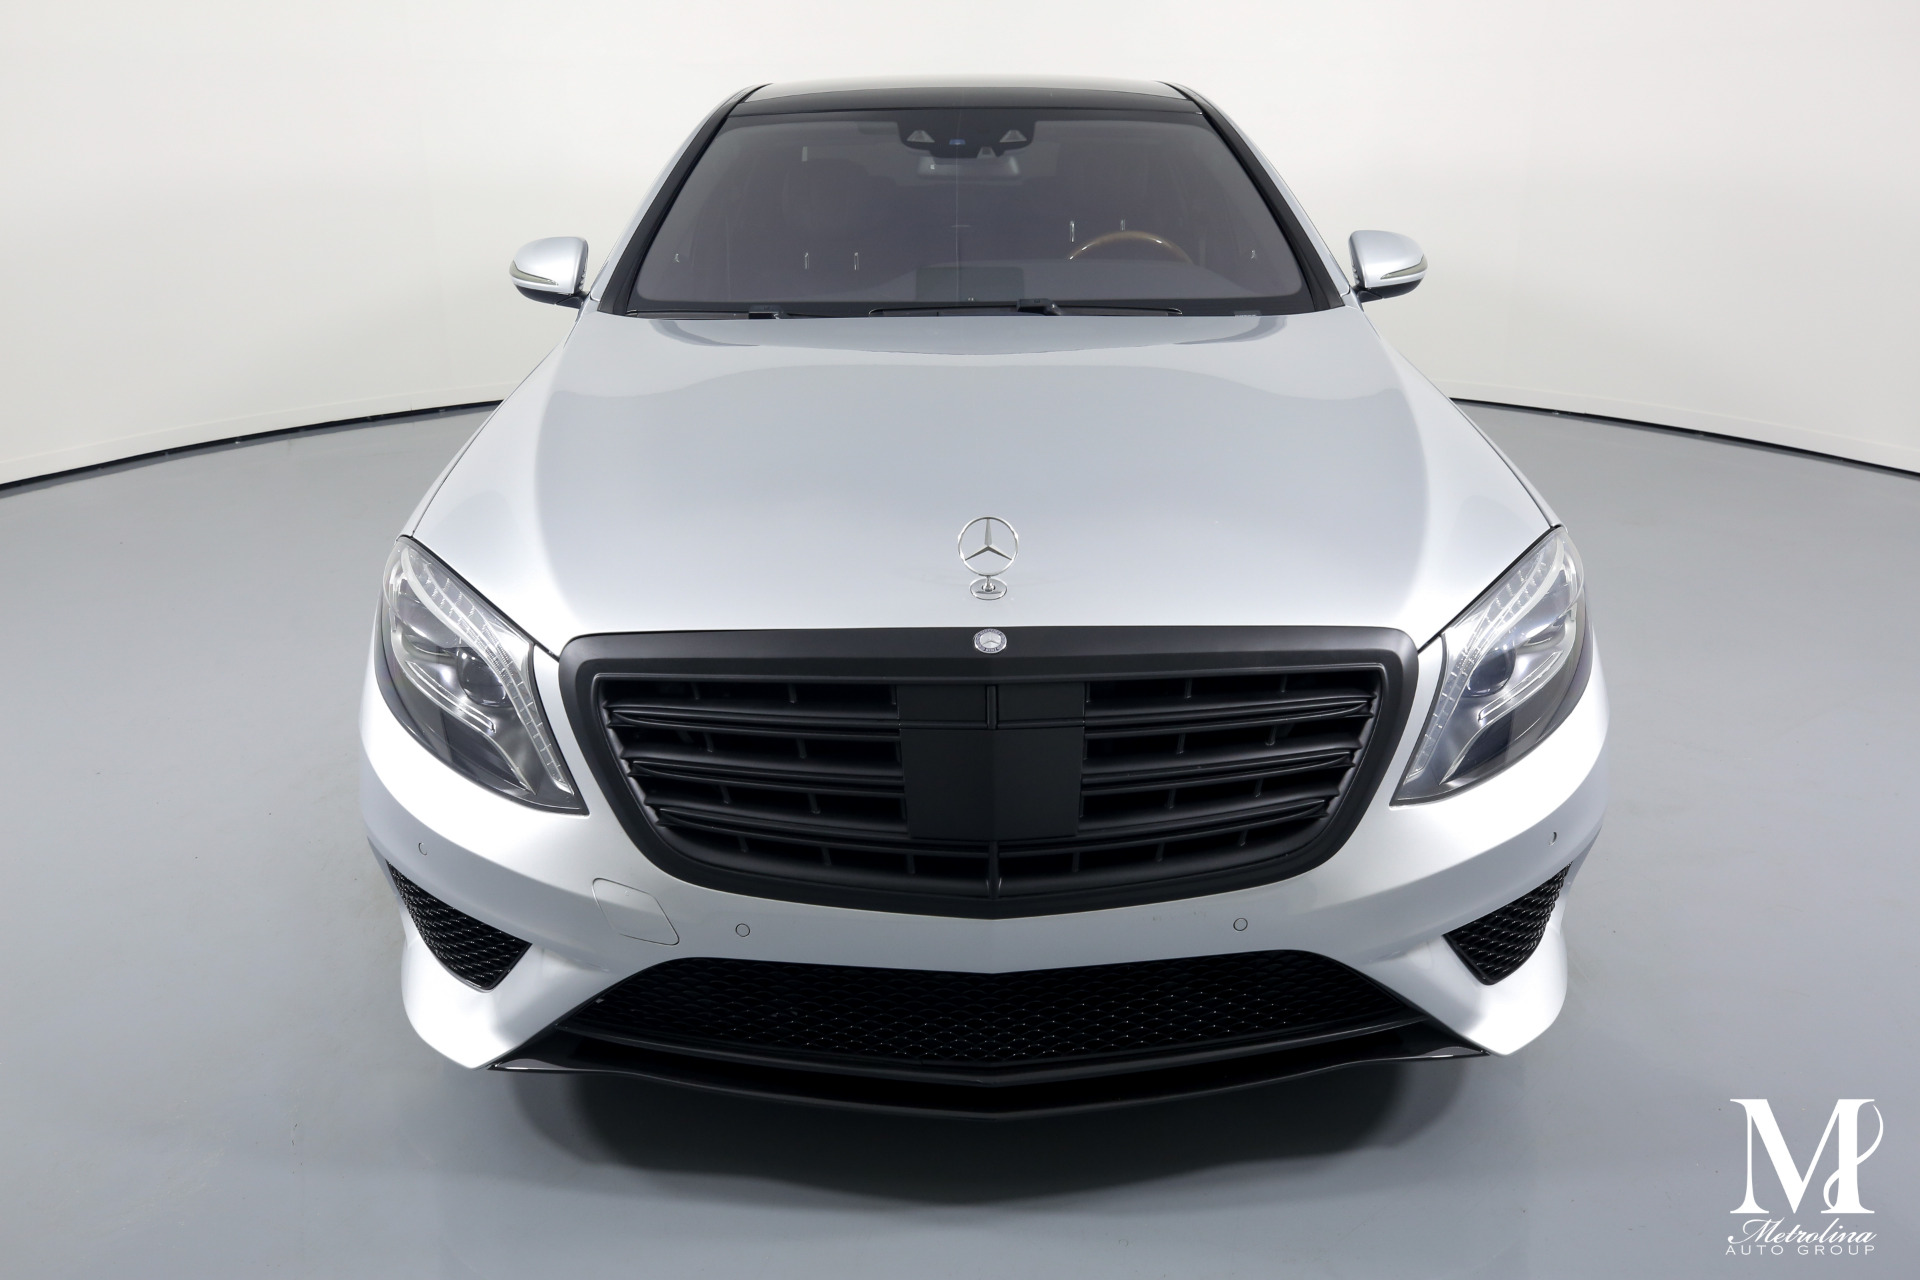 Used 2014 Mercedes-Benz S-Class S 550 for sale $49,996 at Metrolina Auto Group in Charlotte NC 28217 - 3